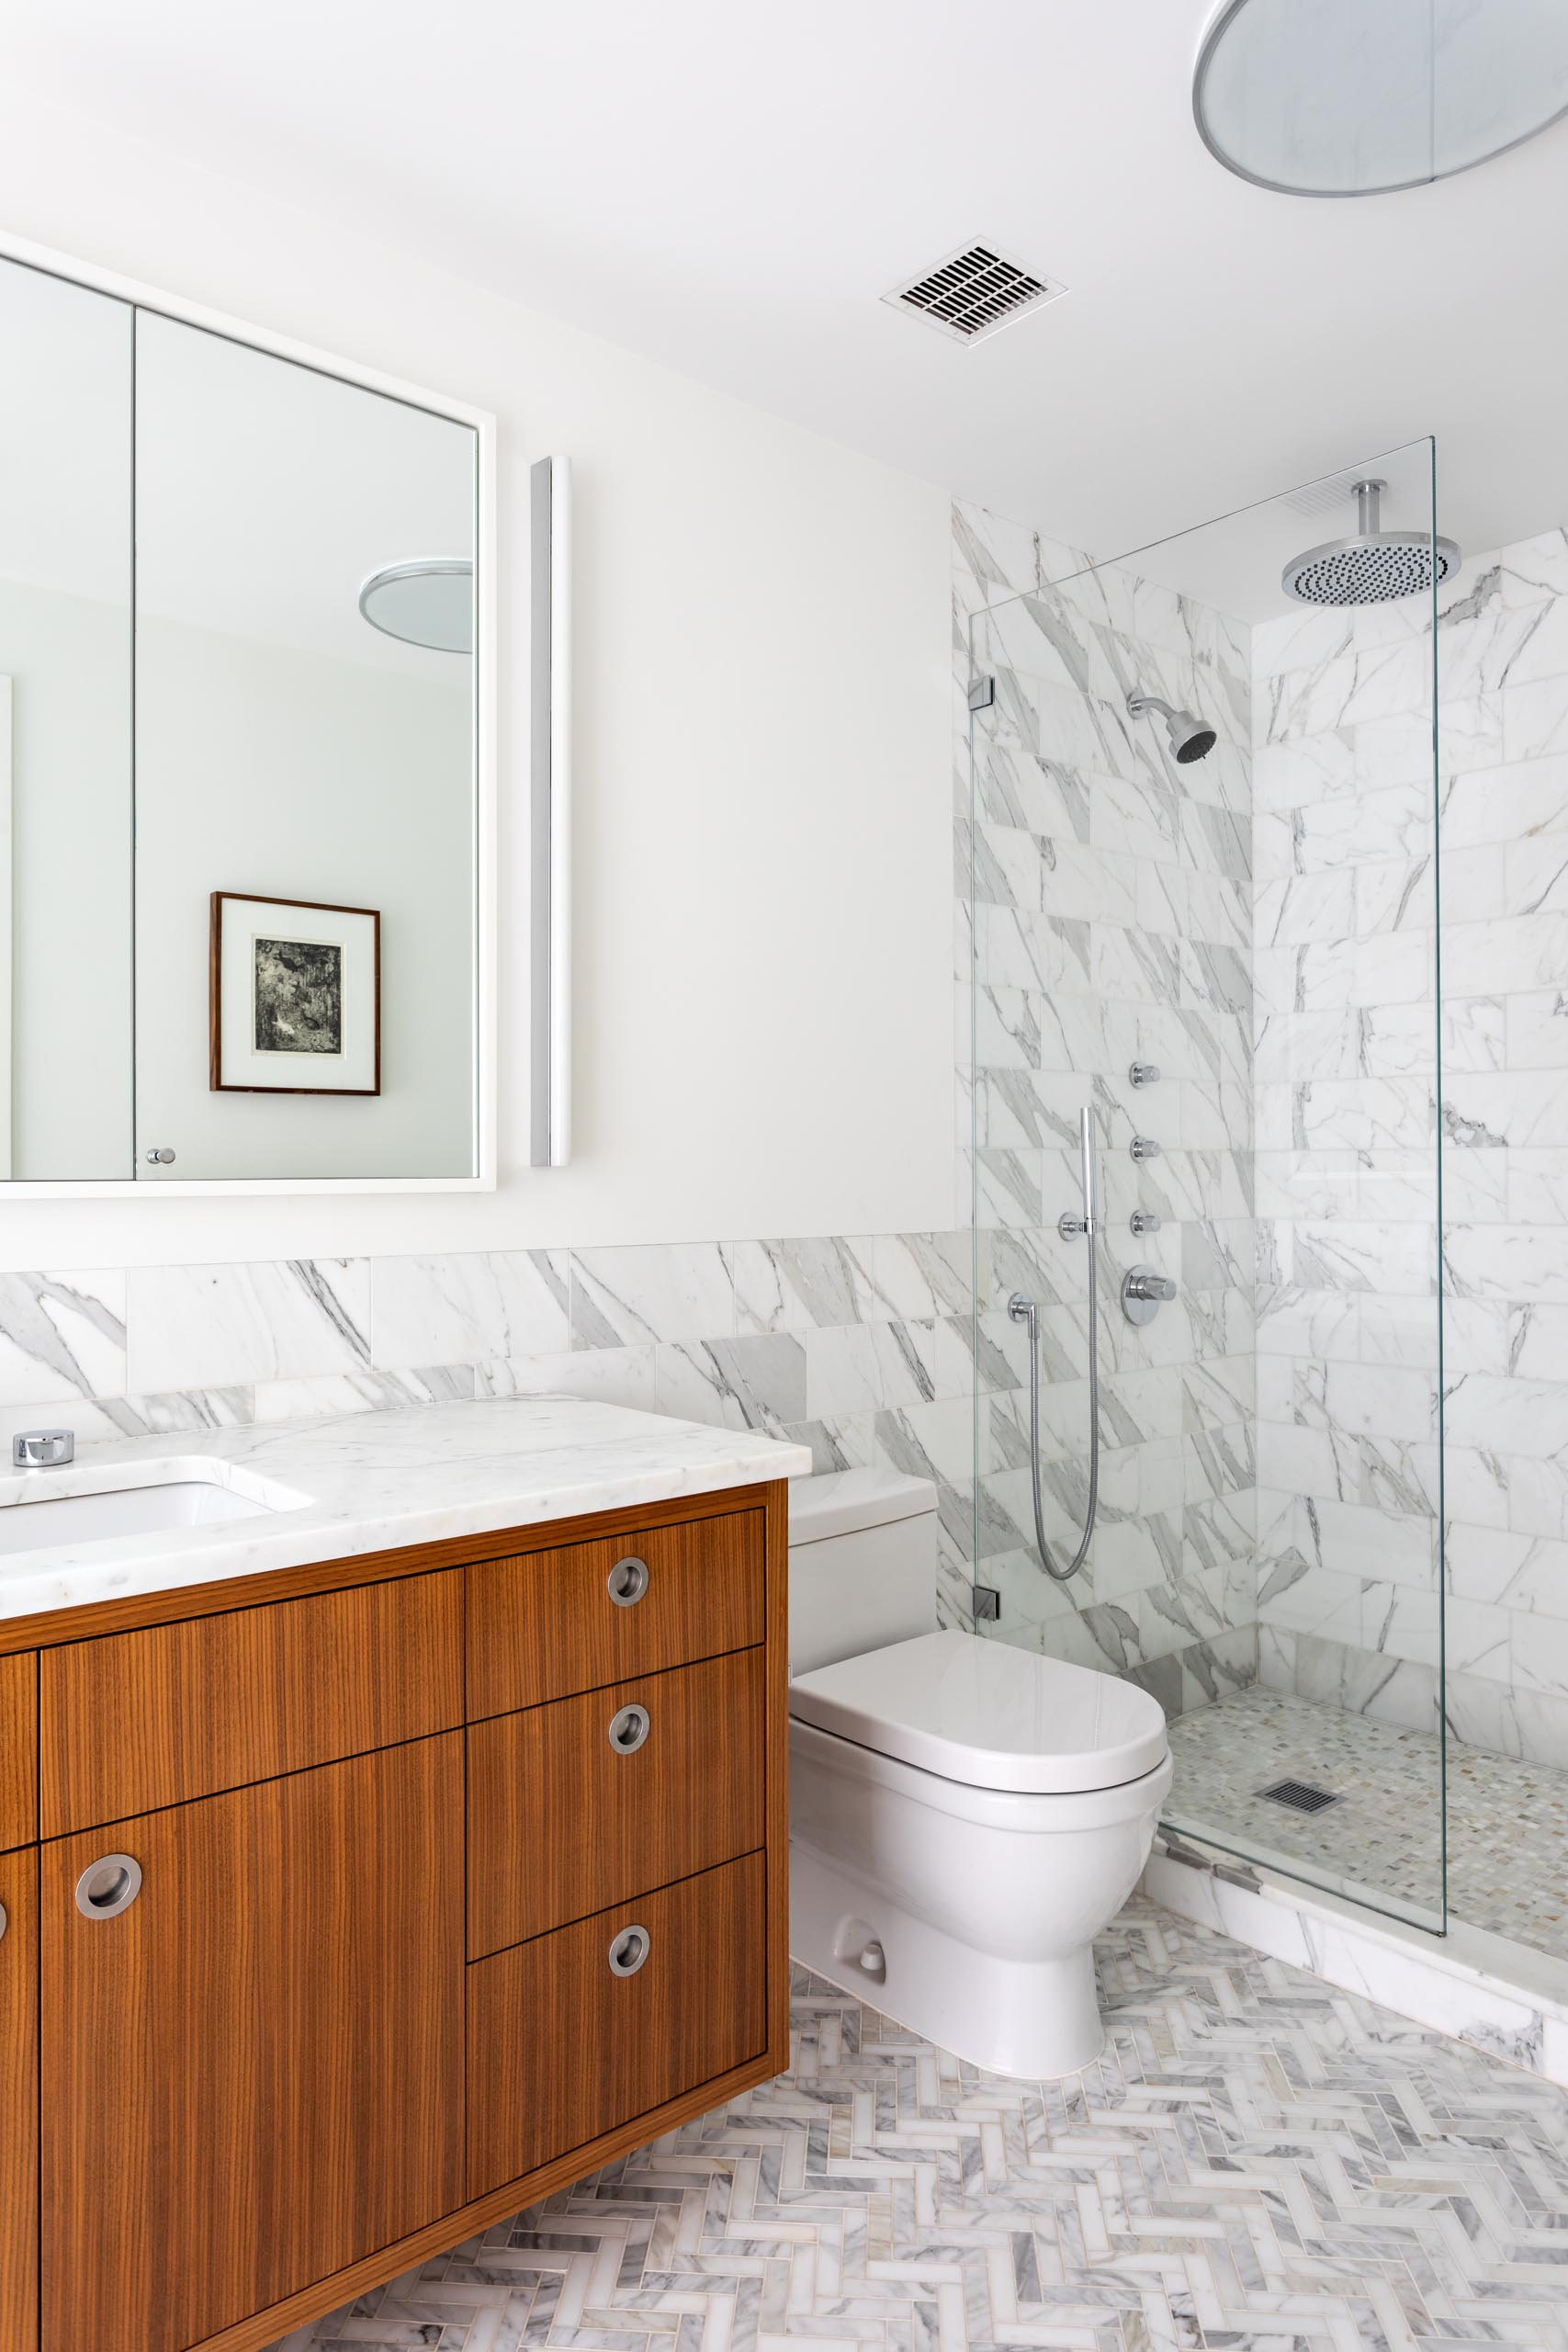 In this mdoern bathroom, there's a floating wood vanity with a tri-panel mirror mounted to the wall, and a marble backsplash that continues through to the shower.